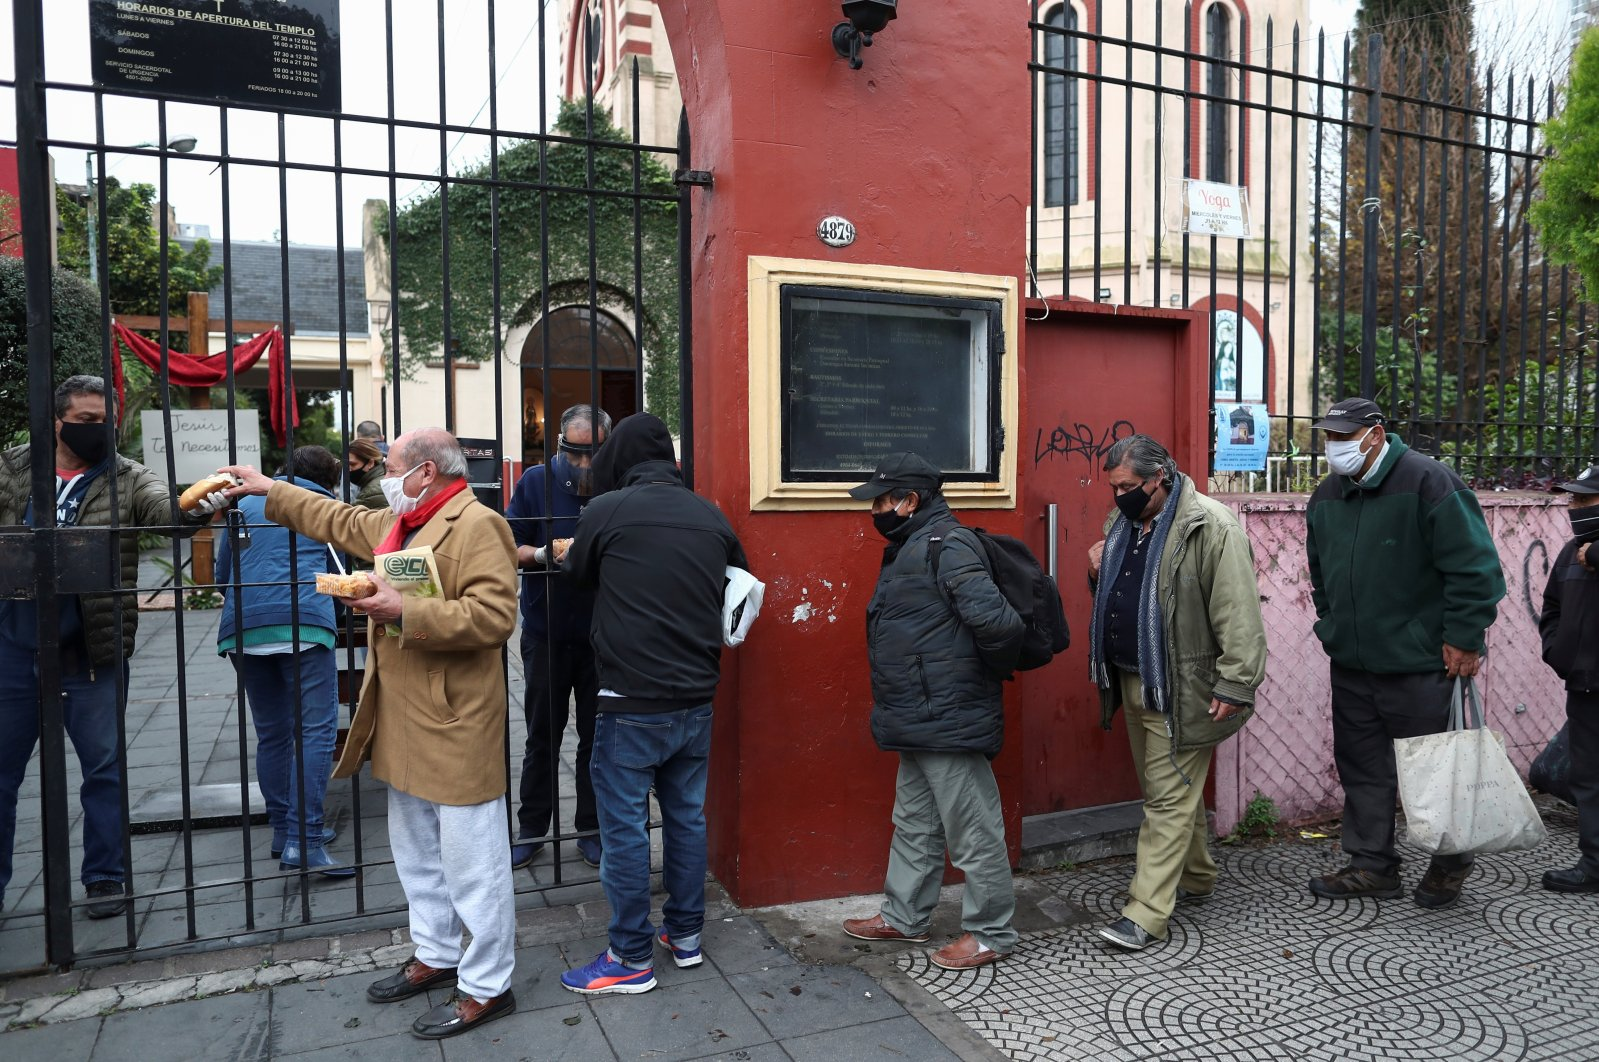 People line up to receive a ration of stew at a soup kitchen organized at the Caacupe church, during the coronavirus outbreak, in Buenos Aires, Argentina, July 23, 2020. (Reuters Photo)